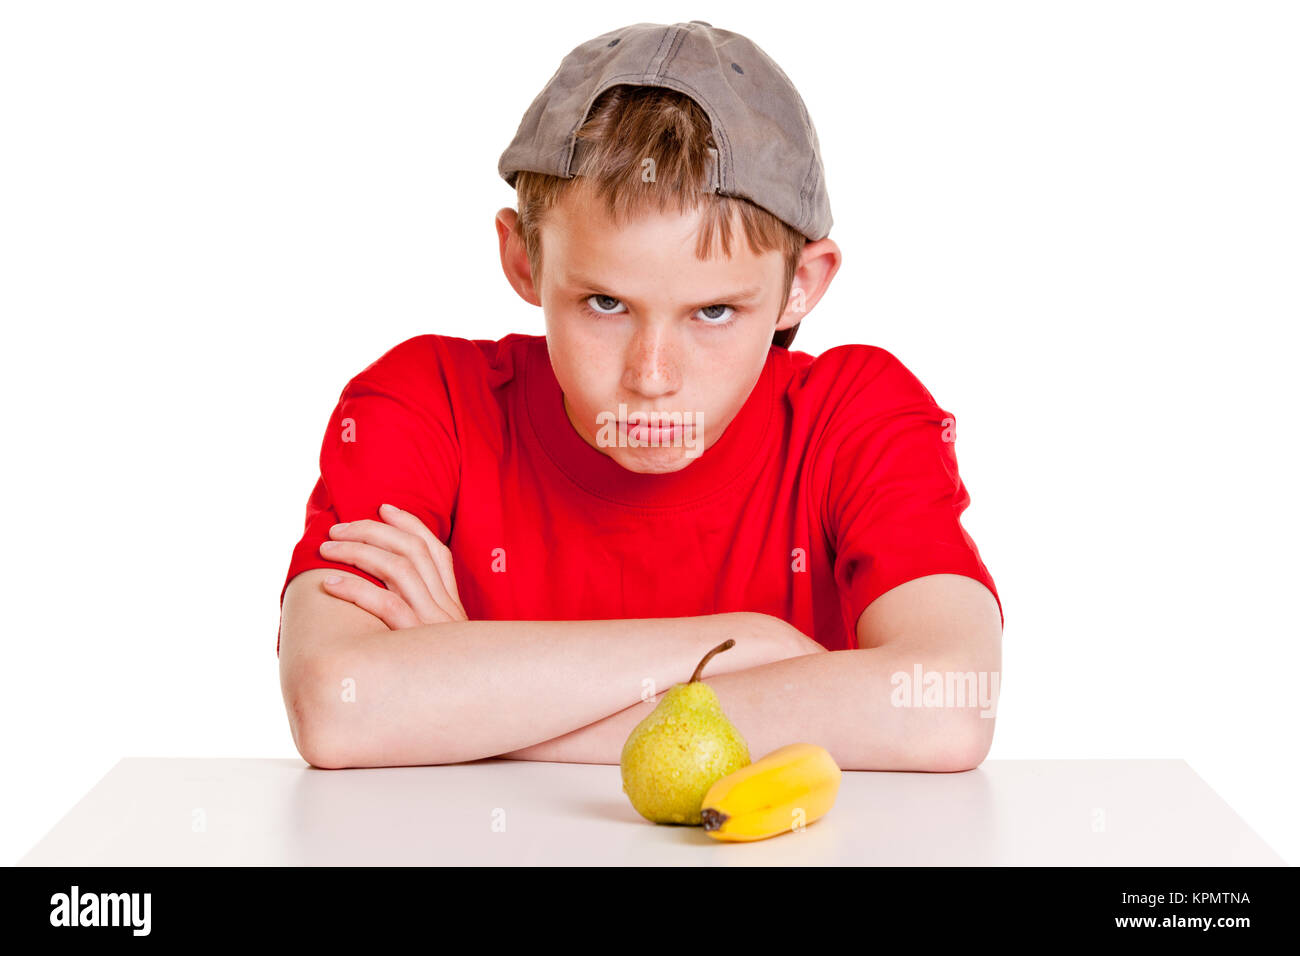 Belligerent young boy with fruit - Stock Image